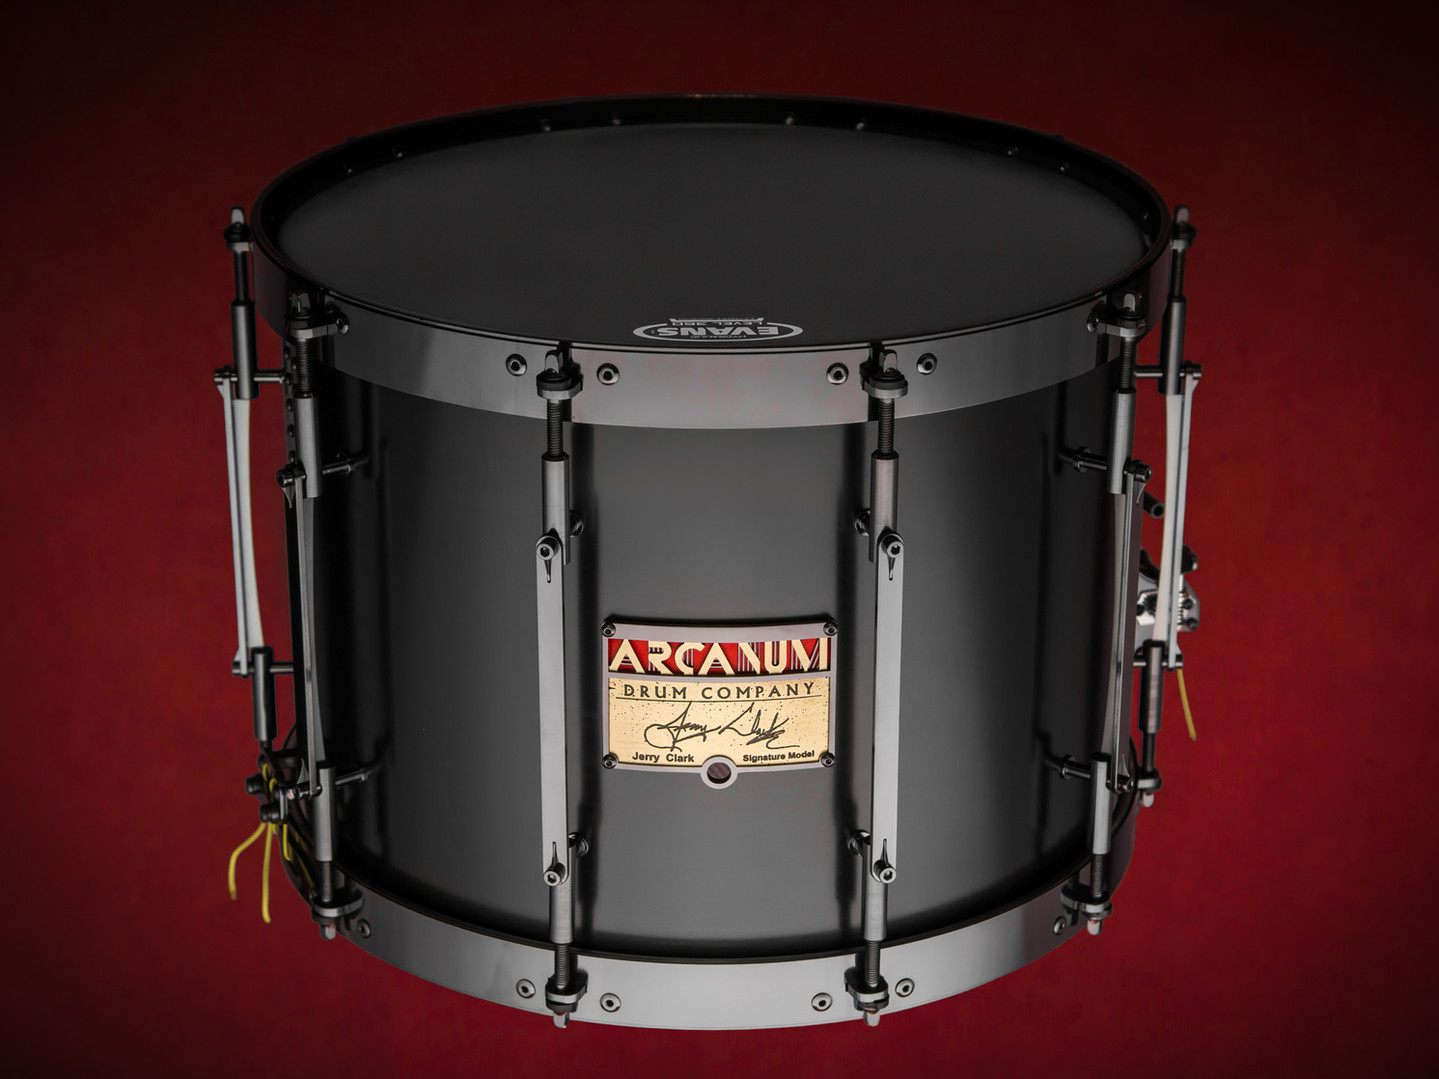 Jerry Clark Signature snare drum